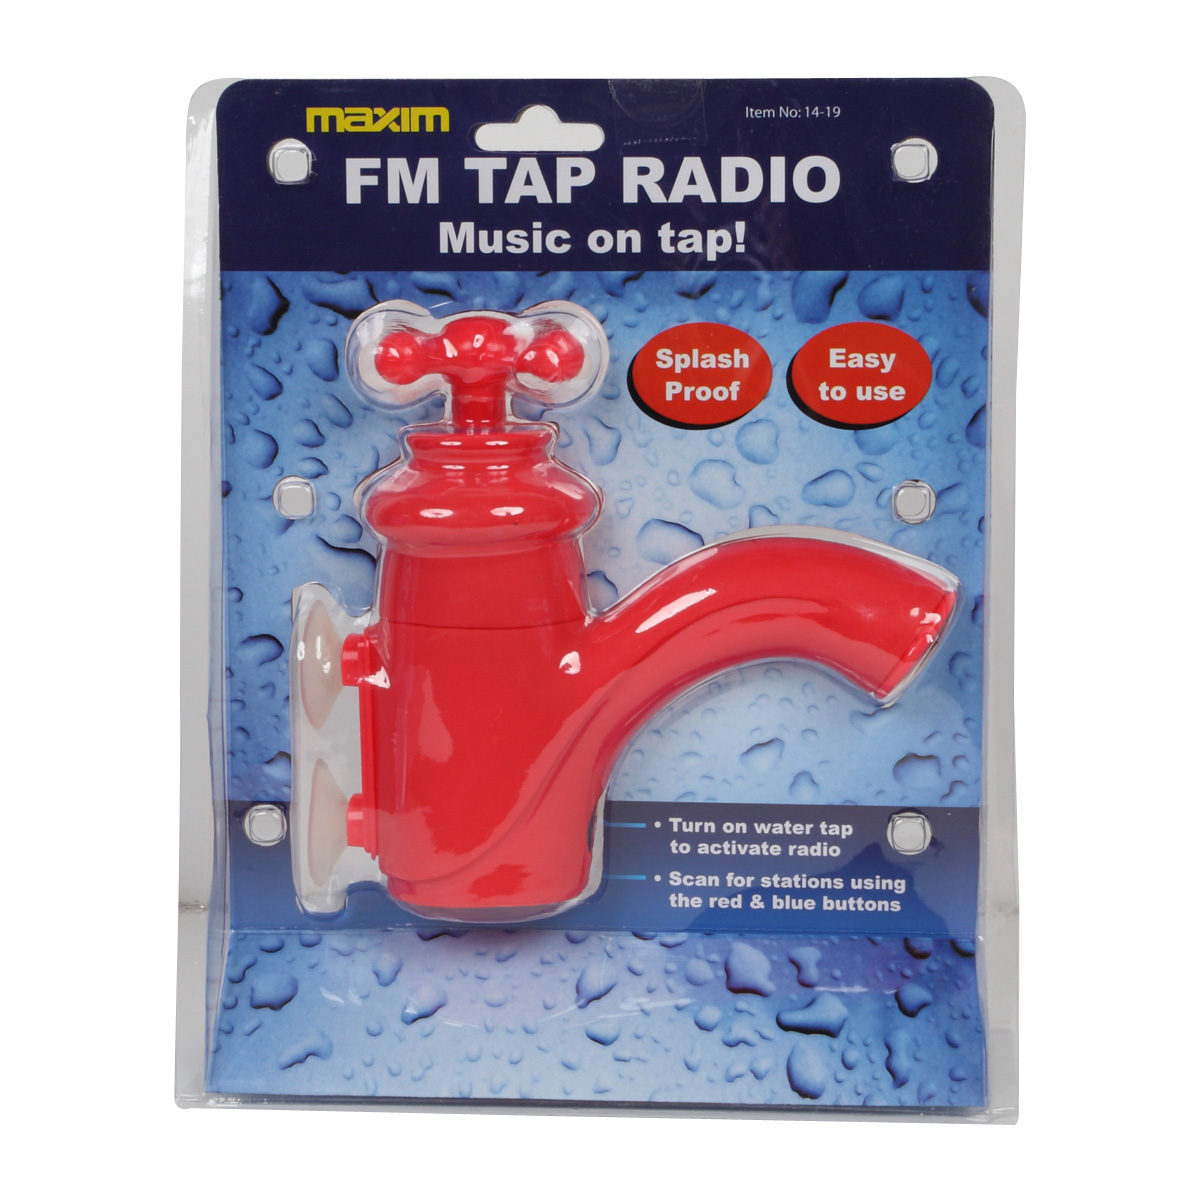 New Maxim Red Splash Proof Giant FM Tap Radio Bathtime Novelty Christmas Gift